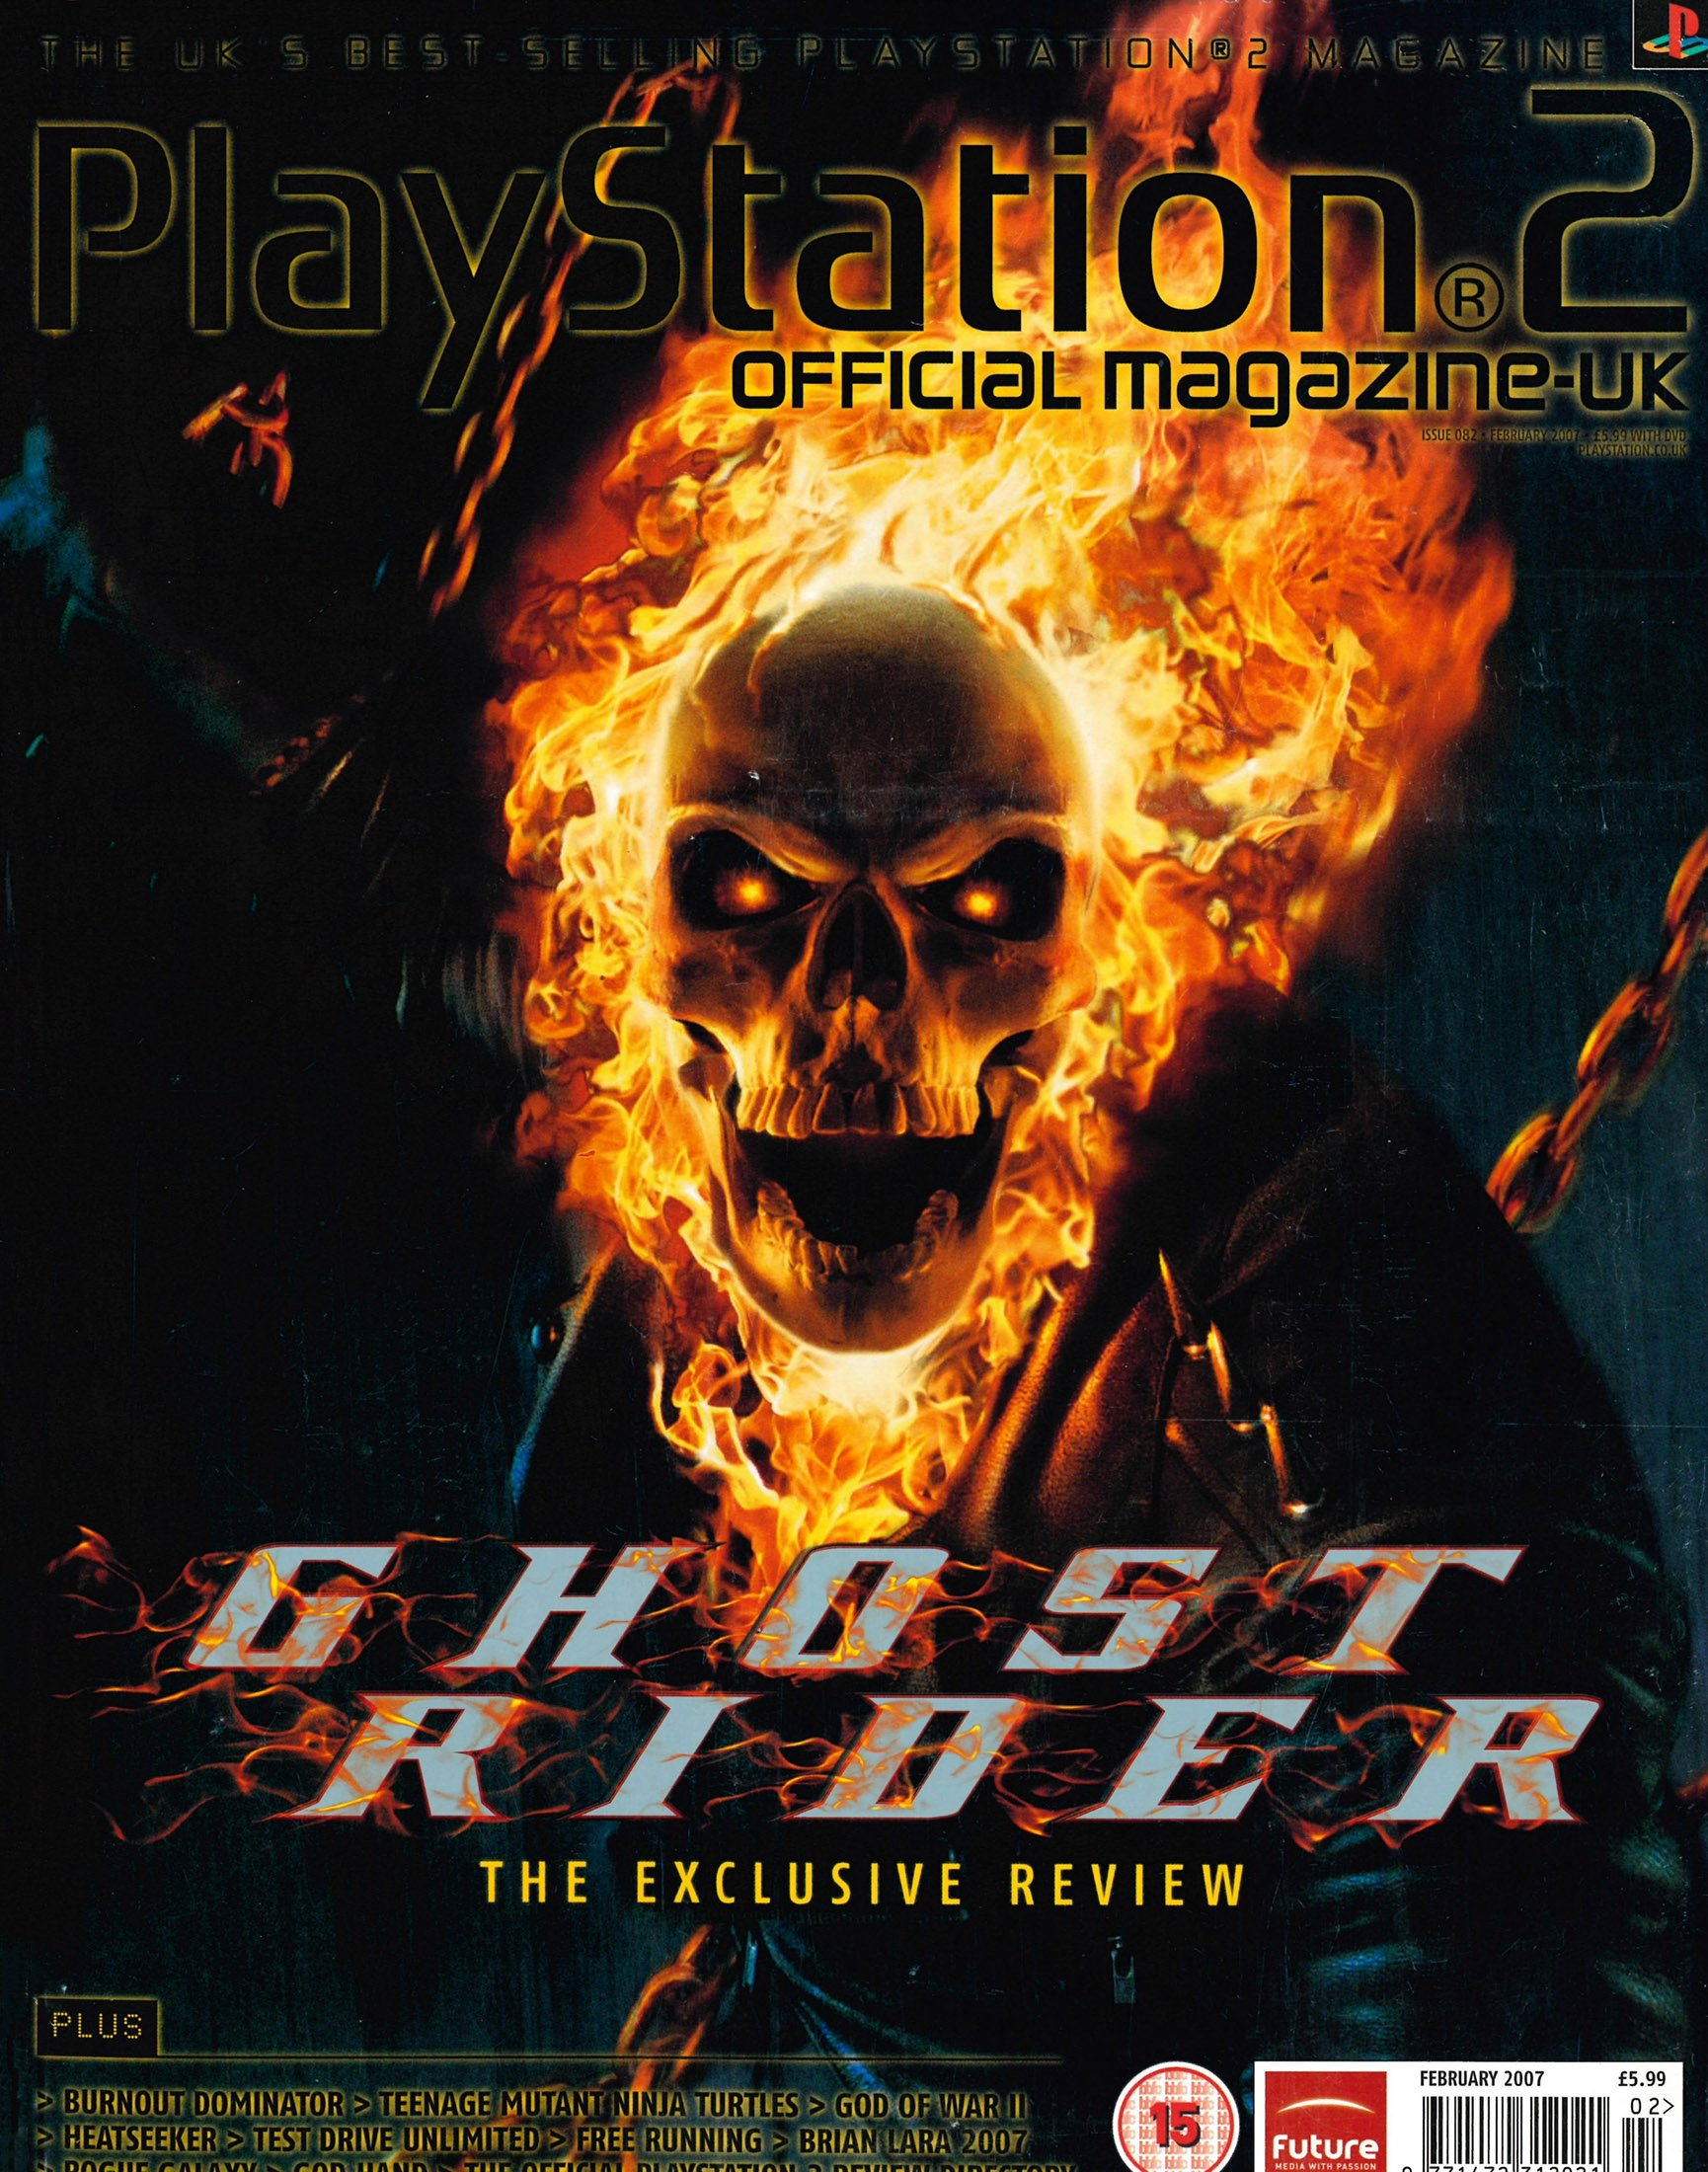 Official Playstation 2 Magazine UK 082 (February 2007)